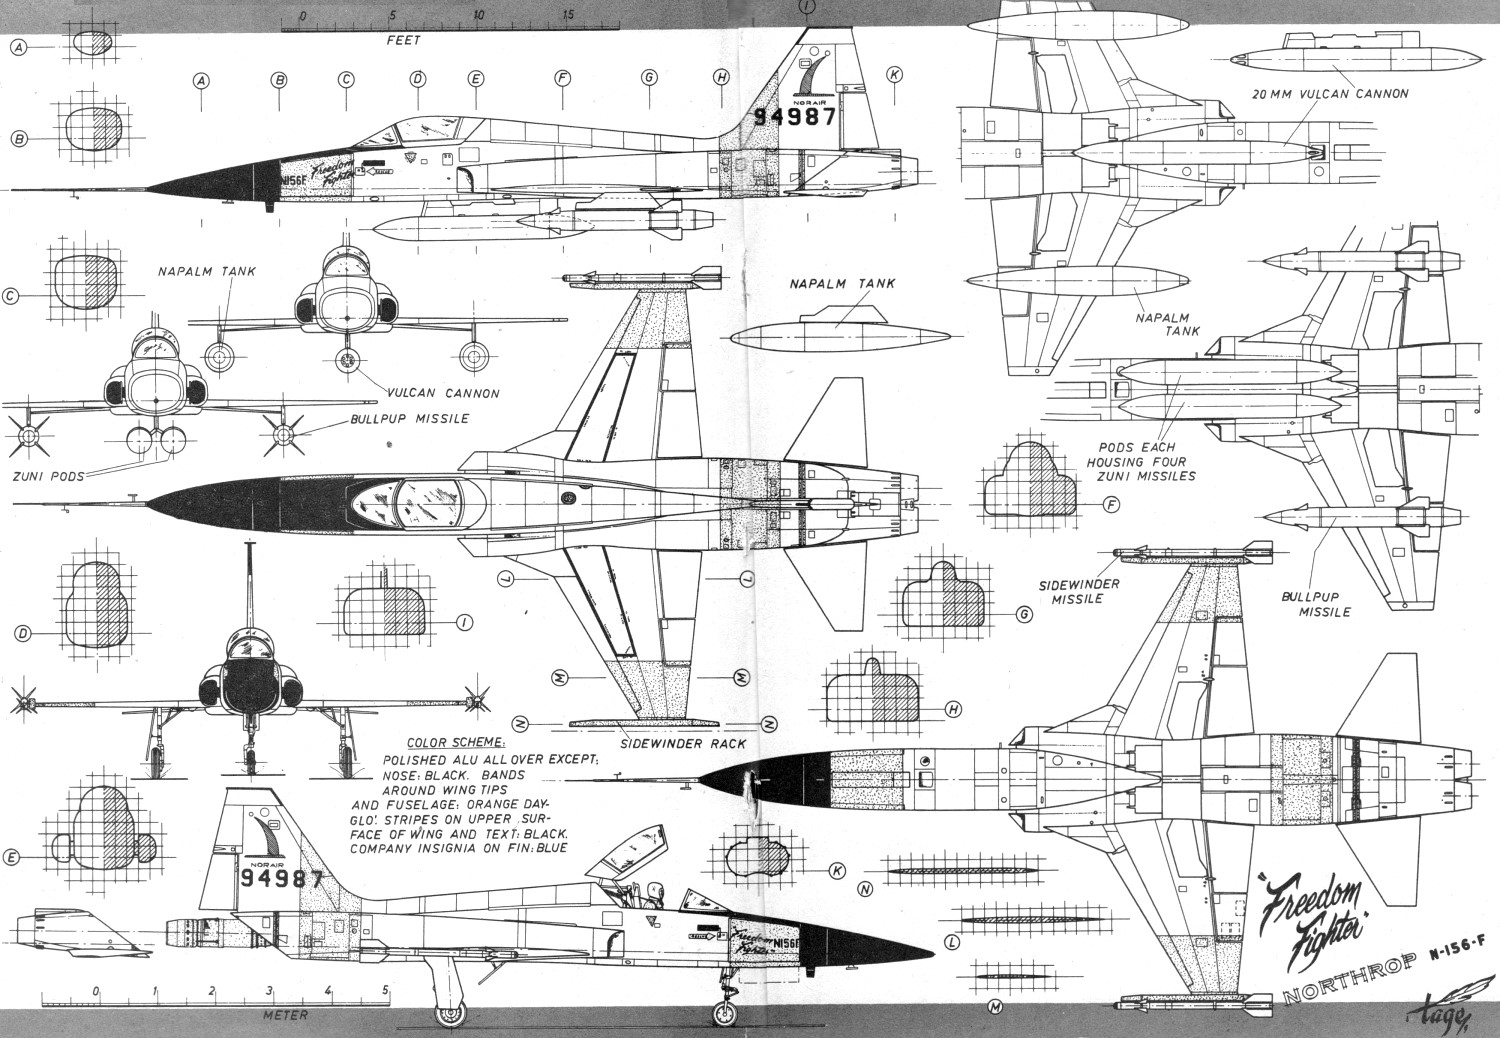 Audi 2000 A4 1 8t Wiper Pump in addition Douglas AD 5 A1 E Skyraider 209486292 together with Grumman wildcat likewise Revlon Hair Dye as well 1982 Corvette Engine Manual Diagram. on carrier air wing